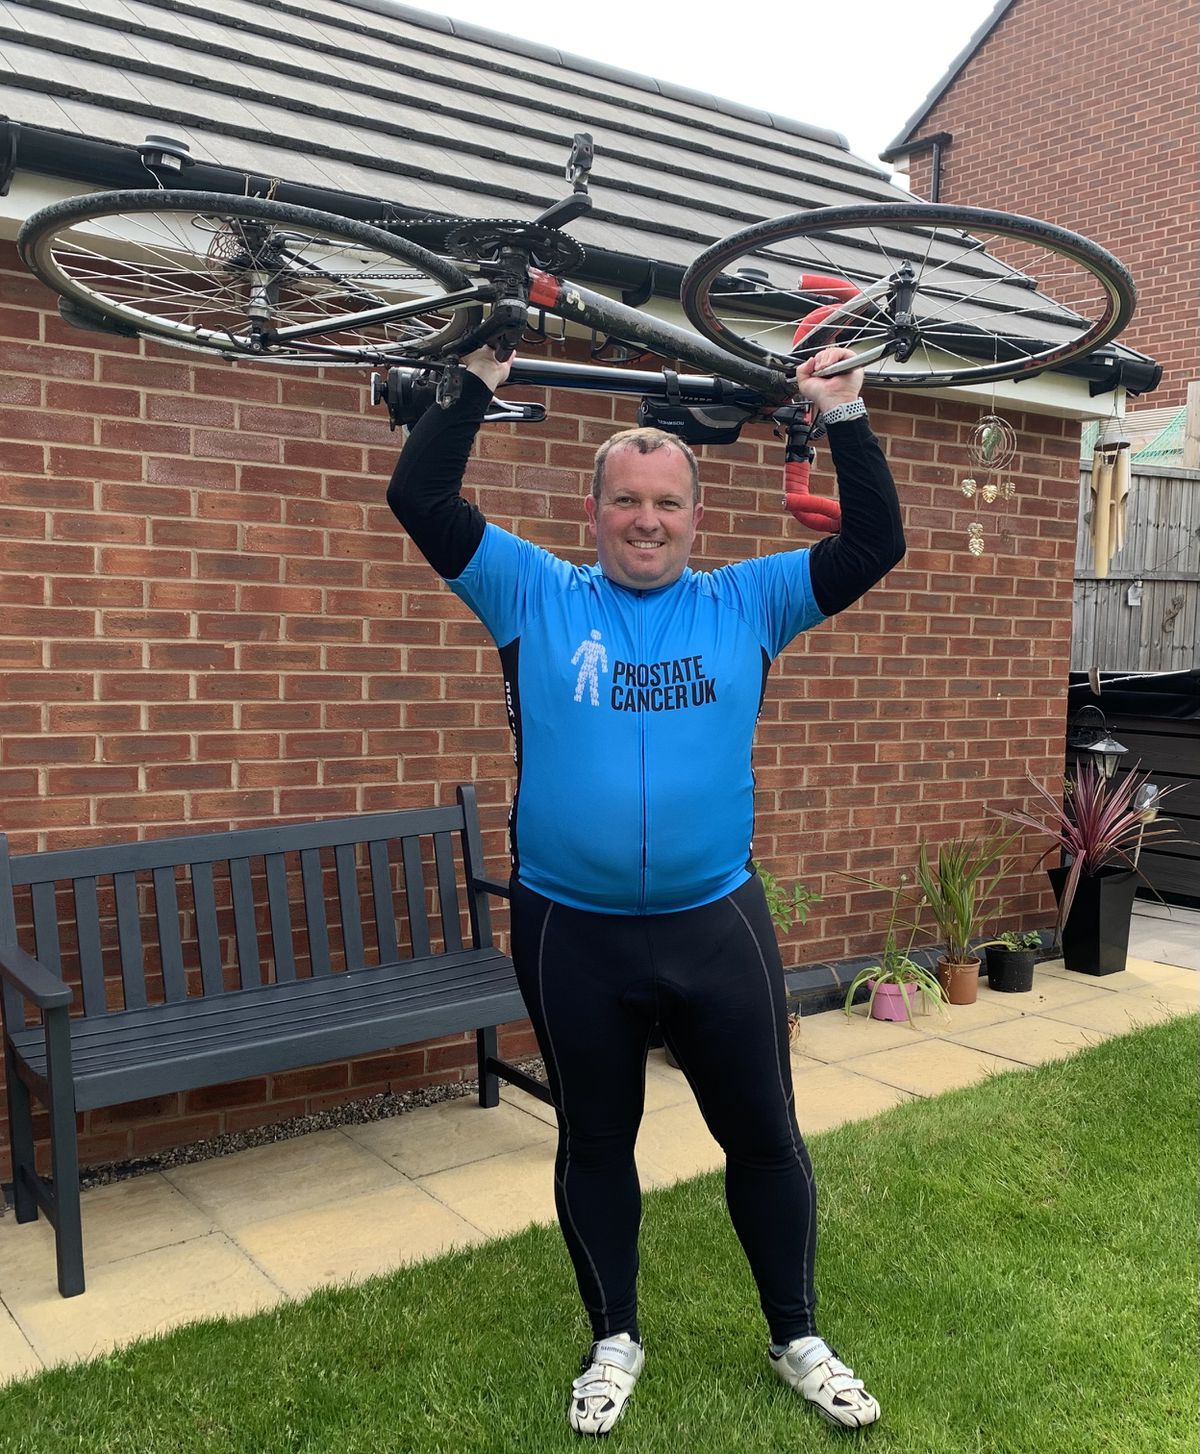 Dave Prince completing his 200-mile cycling challenge in aid of Prostate Cancer UK.